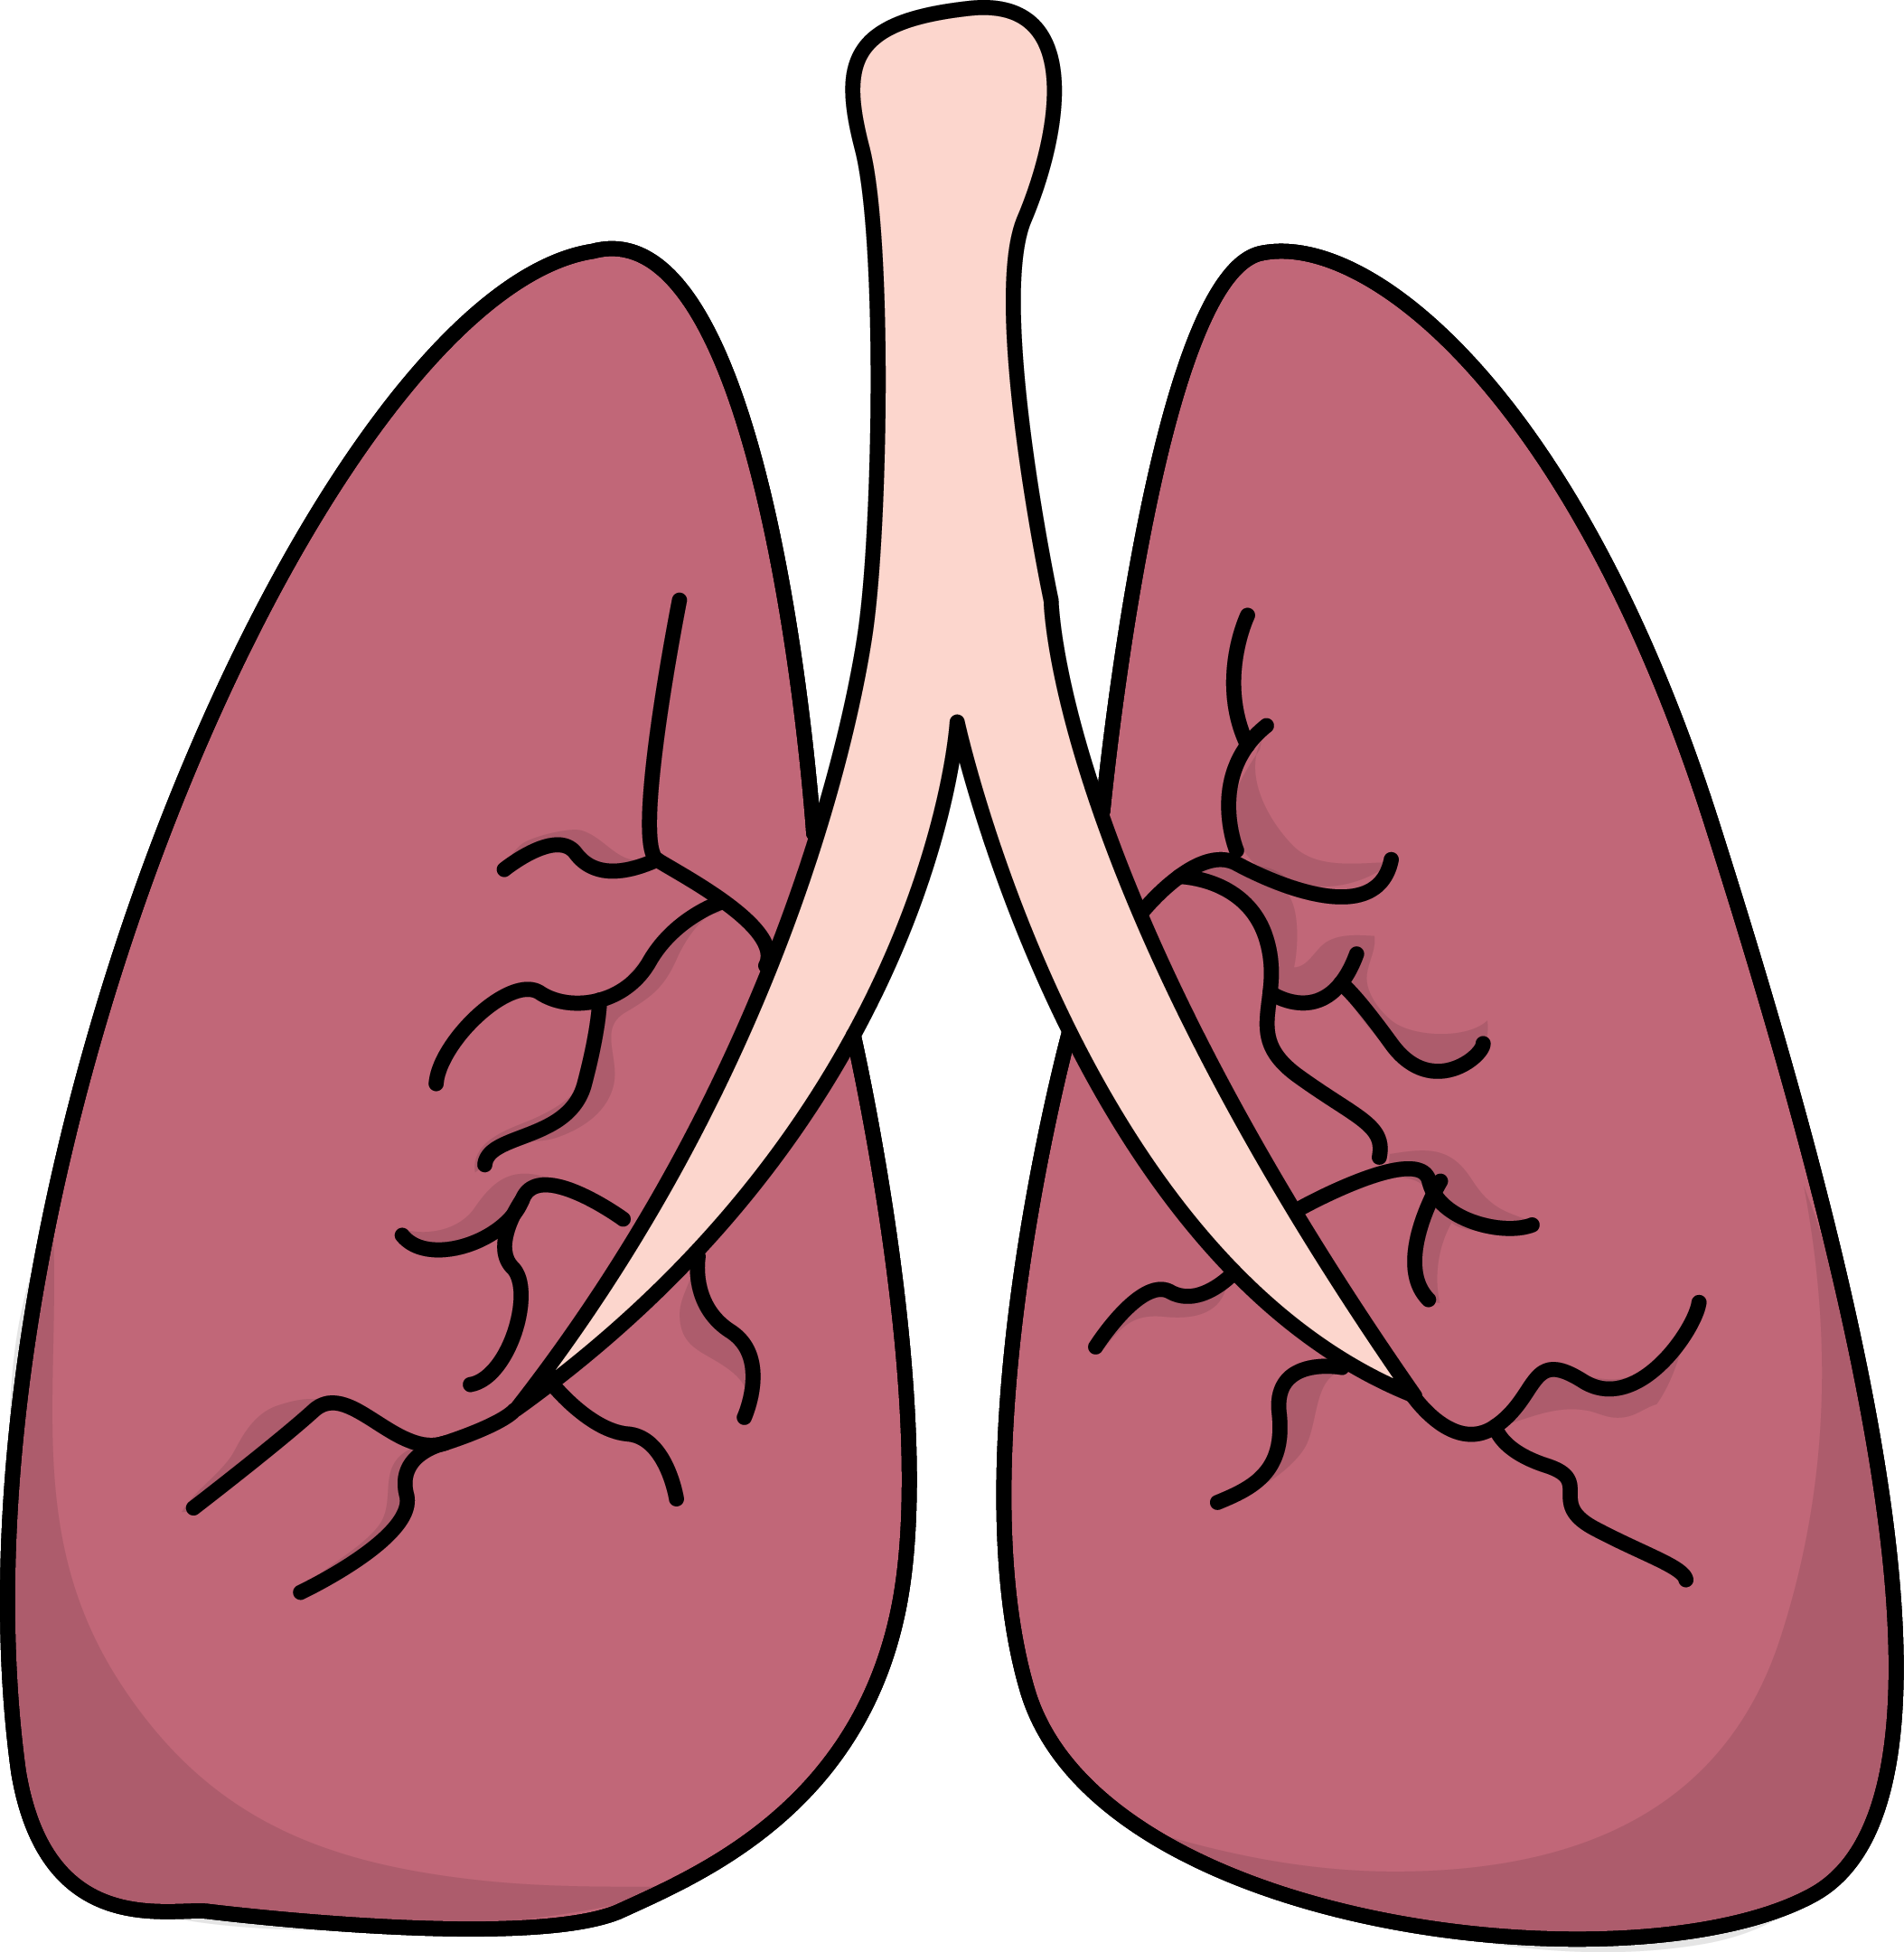 2107x2160 Image For Free Lungs Health High Resolution Clip Art Travel